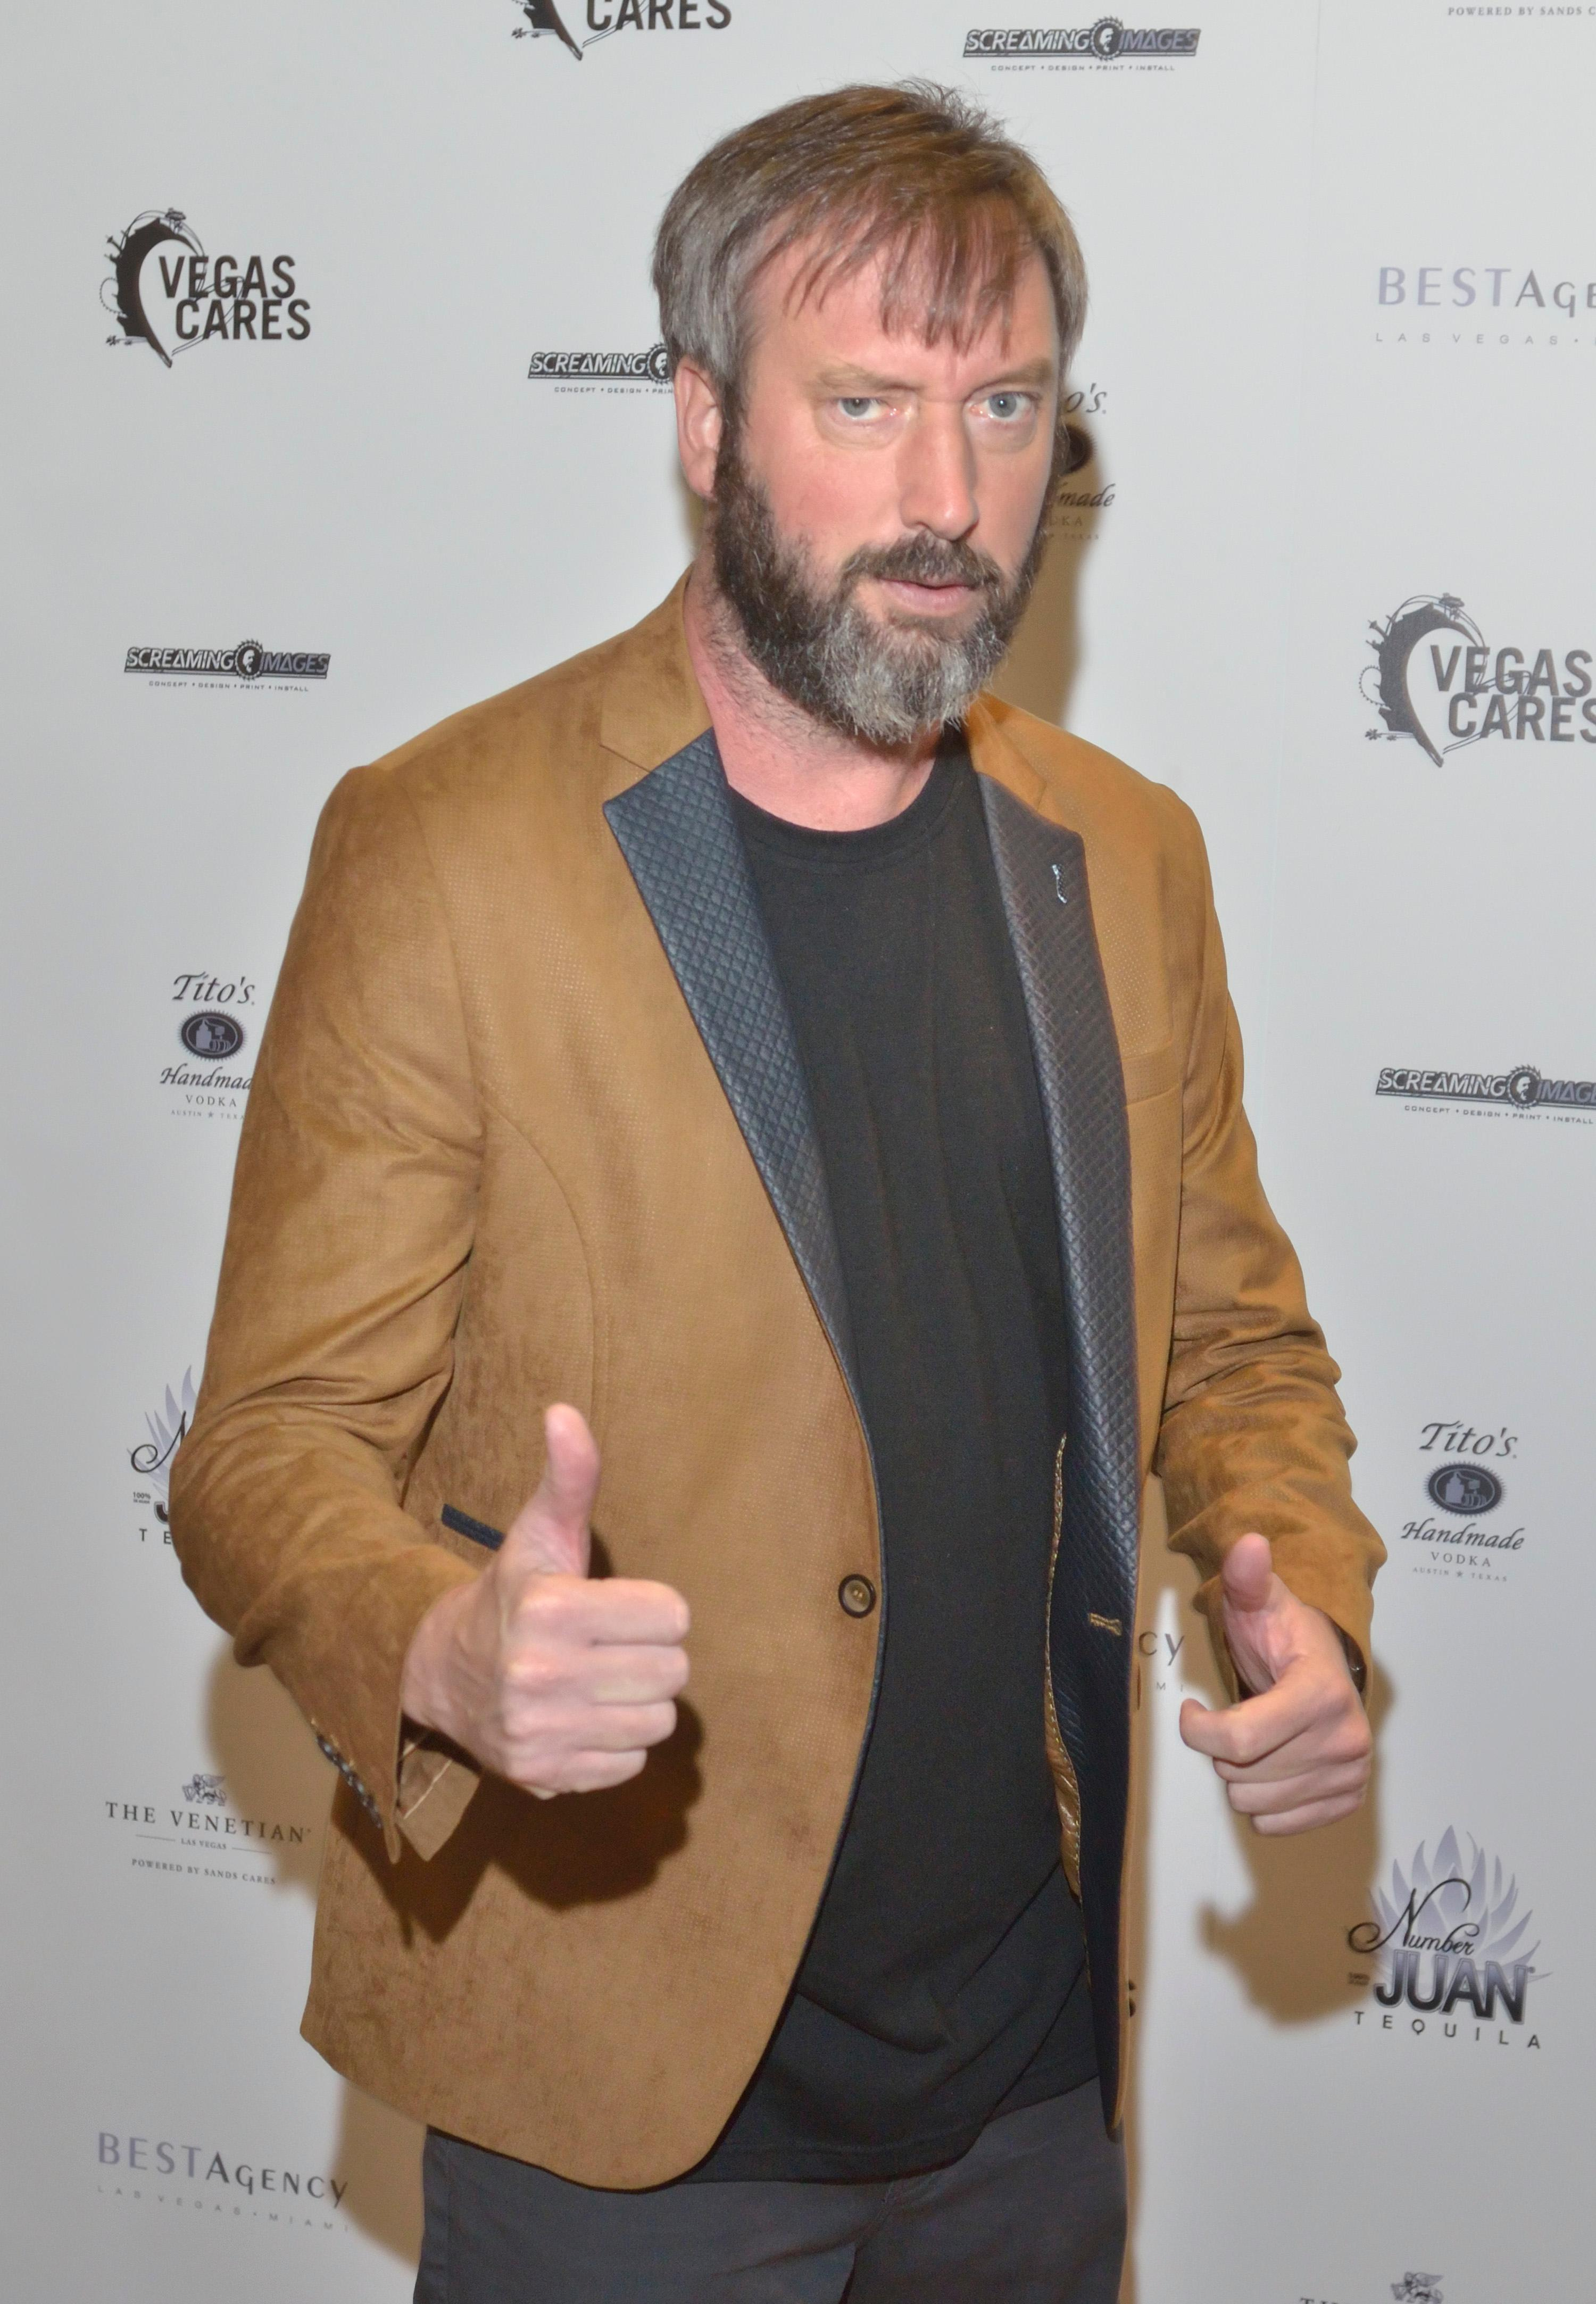 "Comedian Tom Green is shown at the ""Vegas Cares"" benefit concert at the Venetian Theatre in the Venetian hotel-casino at 3355 S. Las Vegas Blvd in Las Vegas on Sunday, Nov 5, 2017. The concert was sponsored by a group of Las Vegas entertainers, producers and business professionals to honor the victims and first responders from shooting at the Route 91 Harvest festival. (Photo/Las Vegas News Bureau/Bill Hughes)"